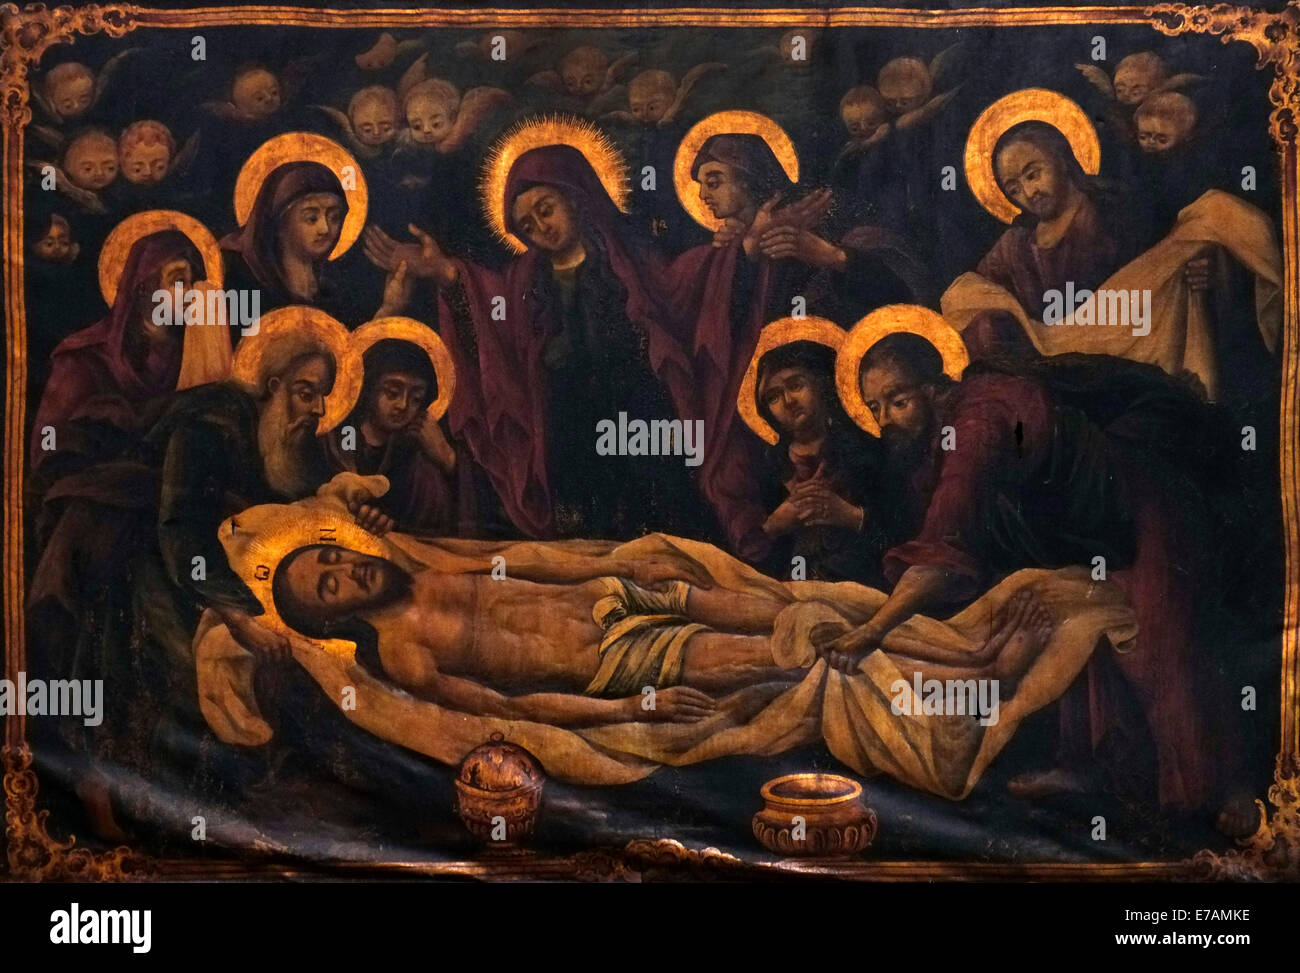 painting depicting jesus christ body being prepared for burial